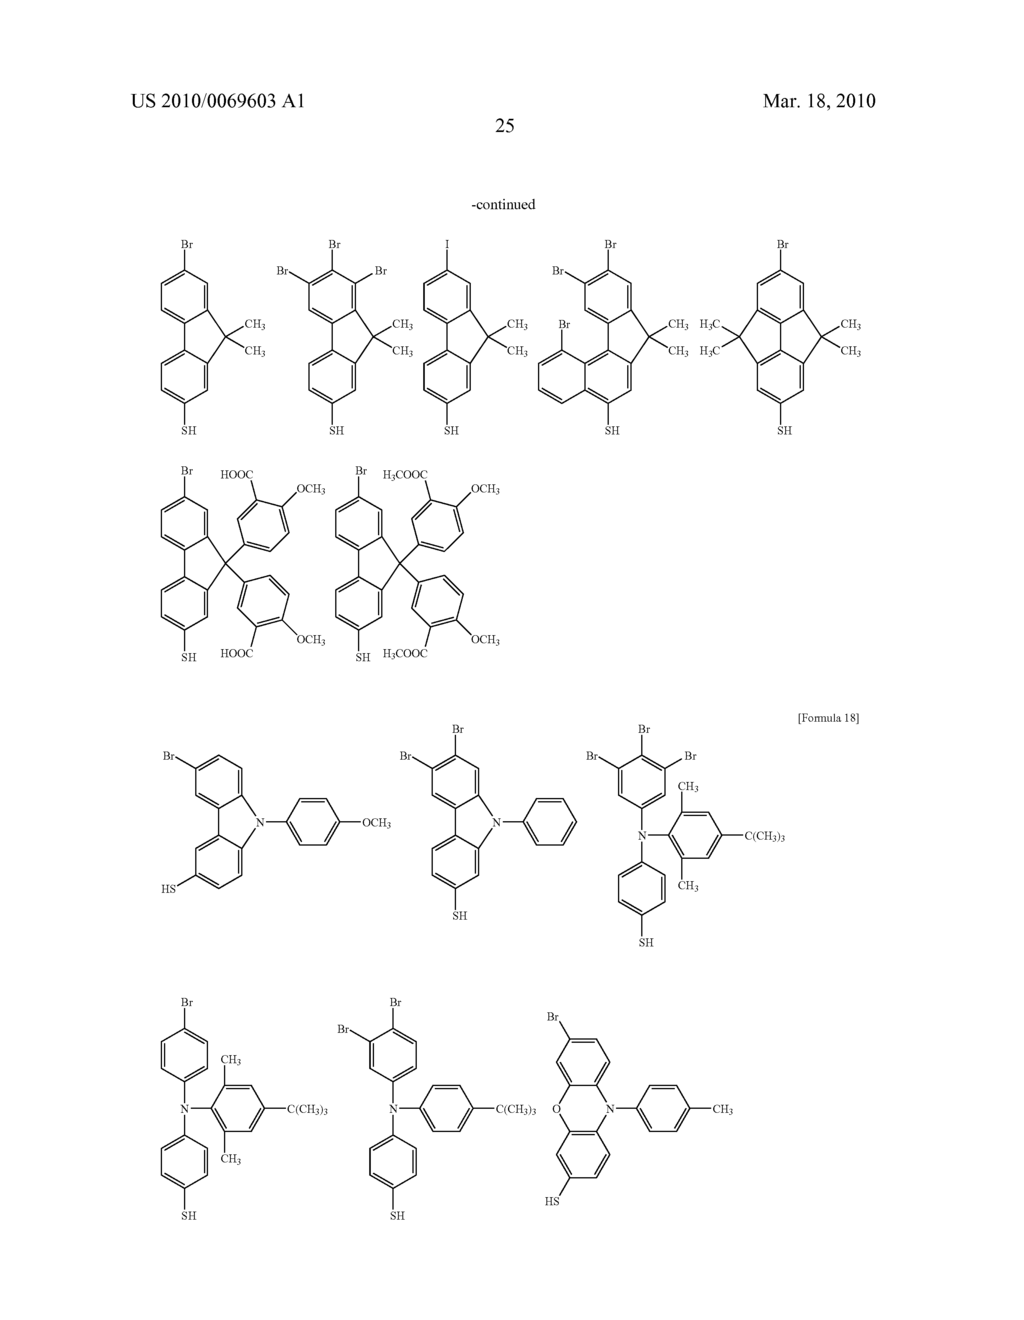 METHOD FOR PRODUCING STRUCTURE WHEREIN AROMATIC POLYMER IS BONDED TO BASE, STRUCTURE HAVING AROMATIC POLYMER CHAIN BONDED TO CONDUCTIVE BASE, AND ELECTRONIC DEVICE COMPRISING THE STRUCTURE - diagram, schematic, and image 28